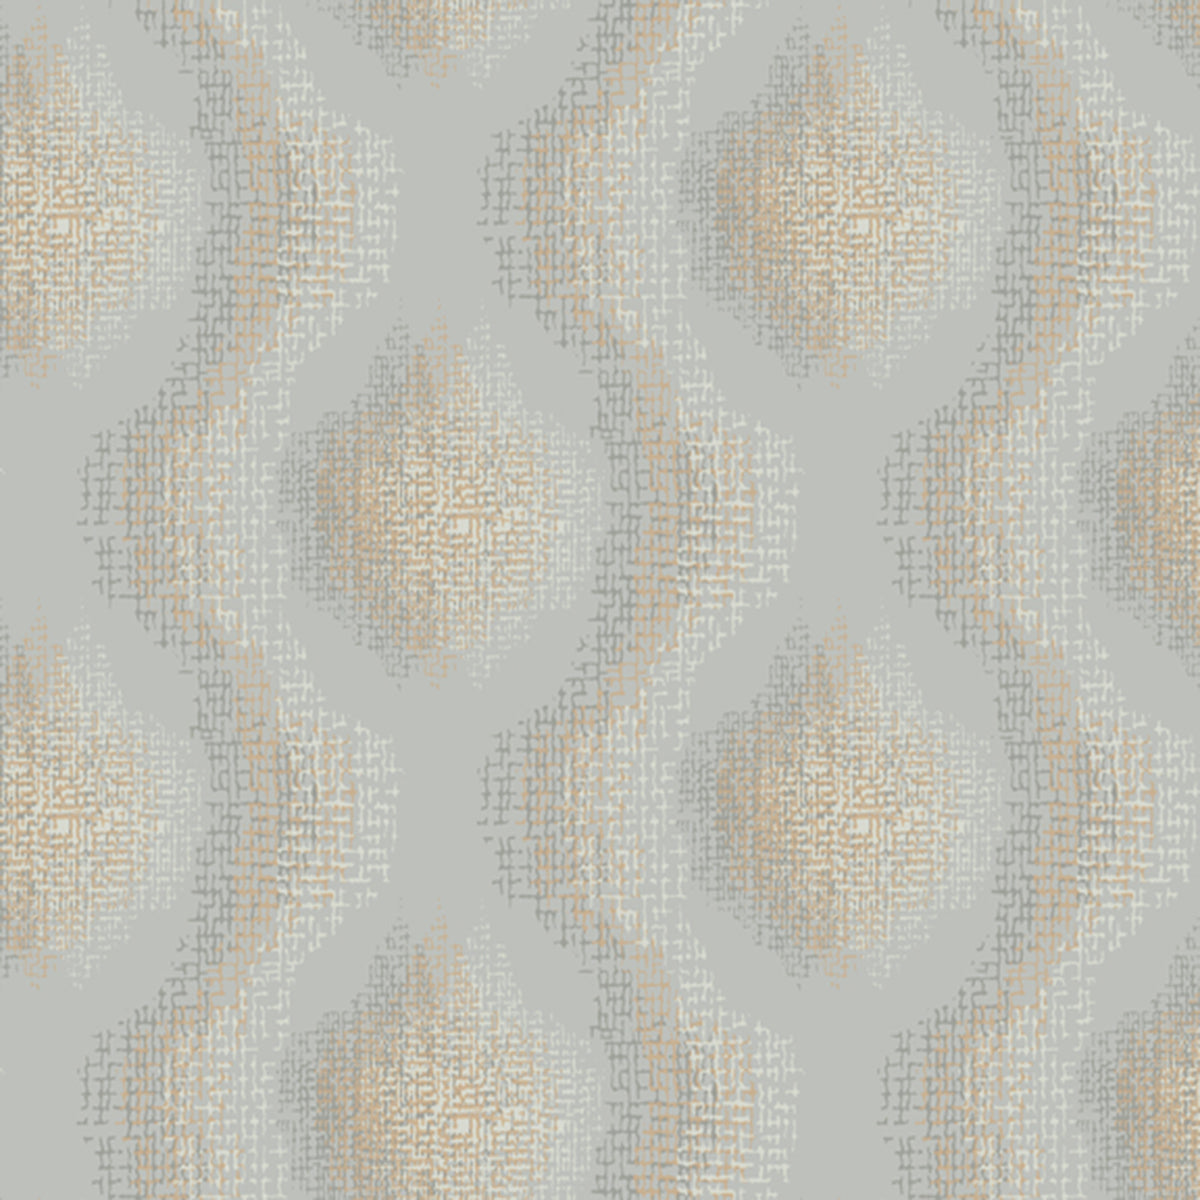 Dream On Evanescence Wallpaper in Grey/silver